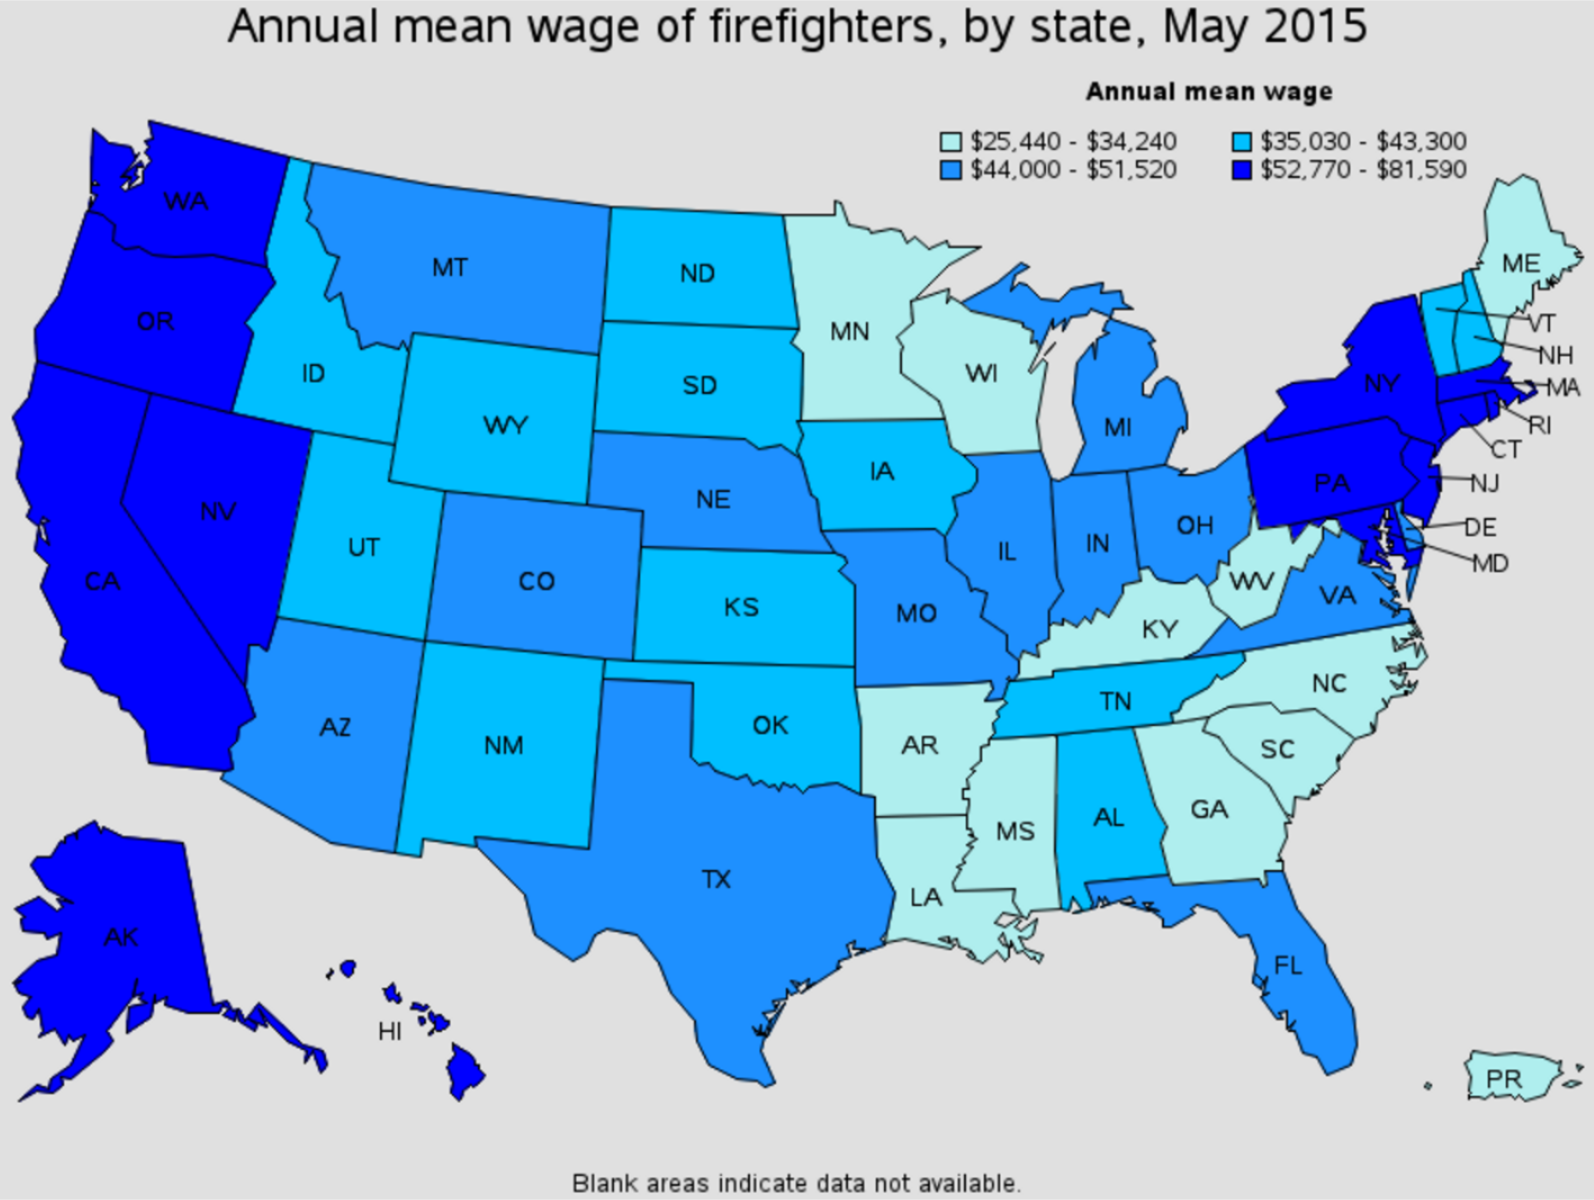 firefighter average salary by state Welch West Virginia